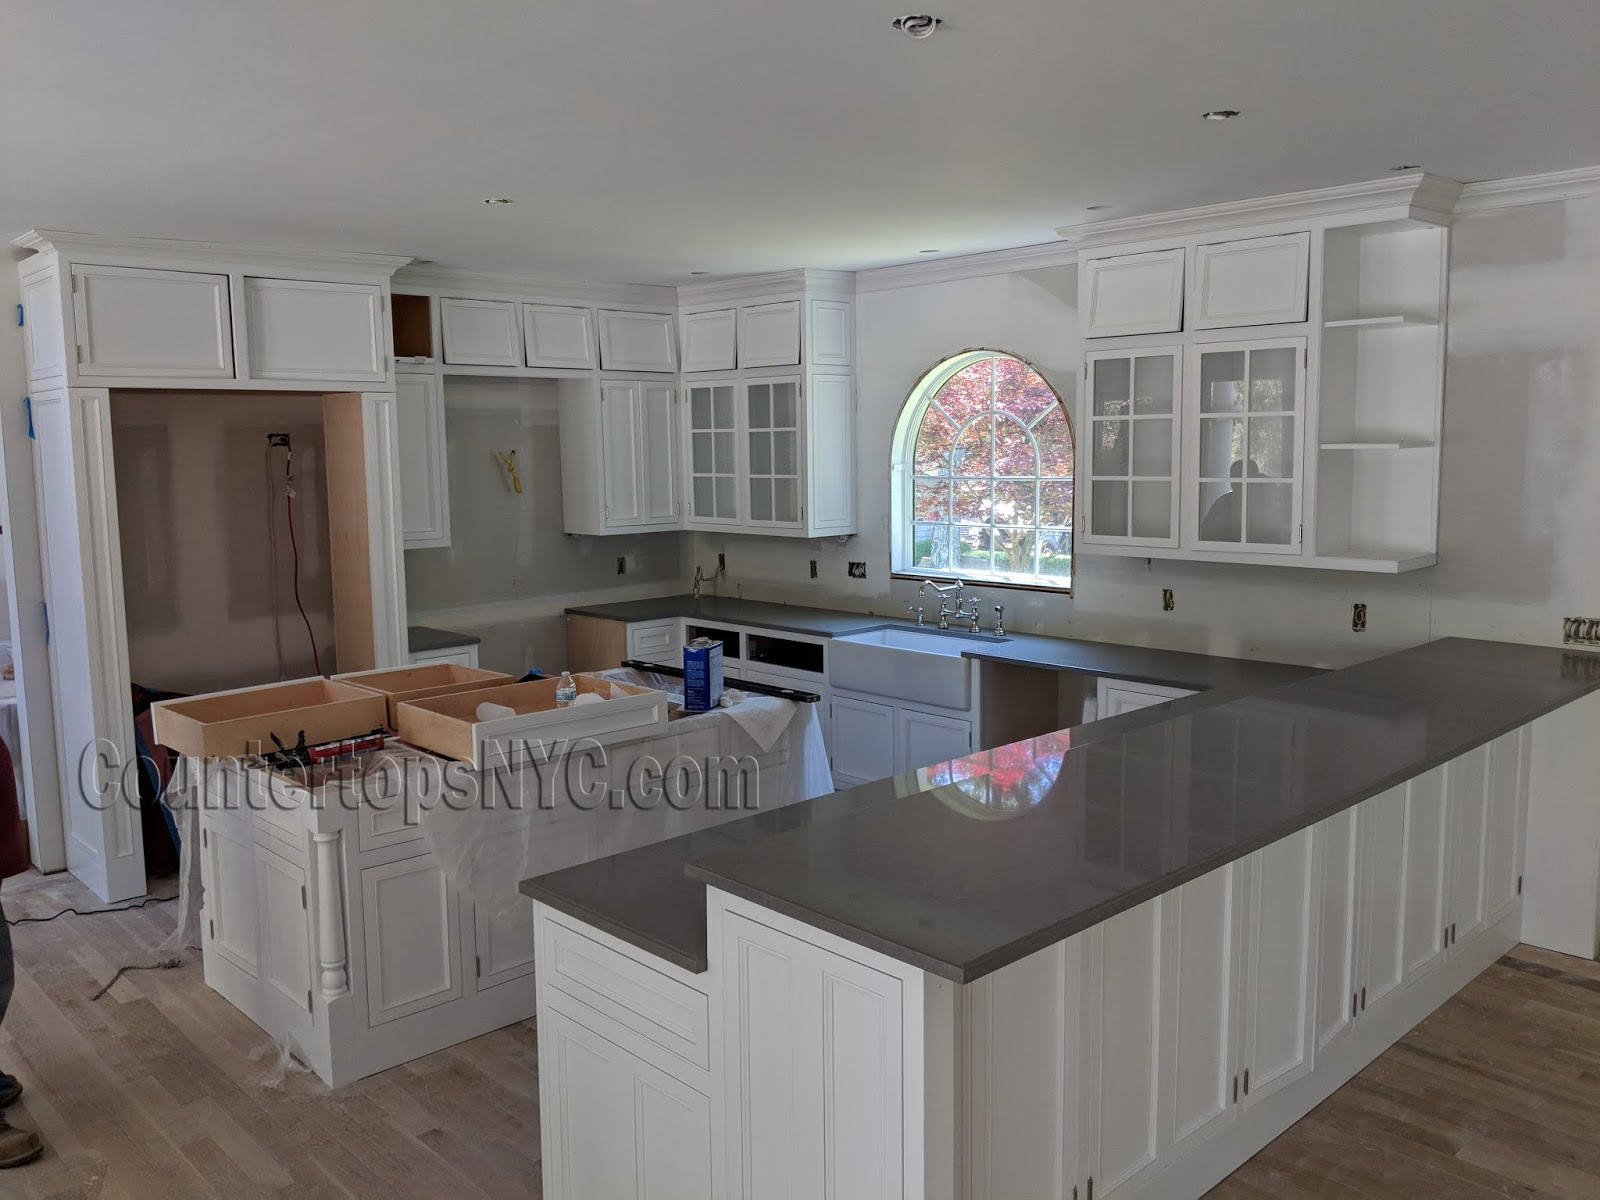 Best Color Quartz With White Cabinets